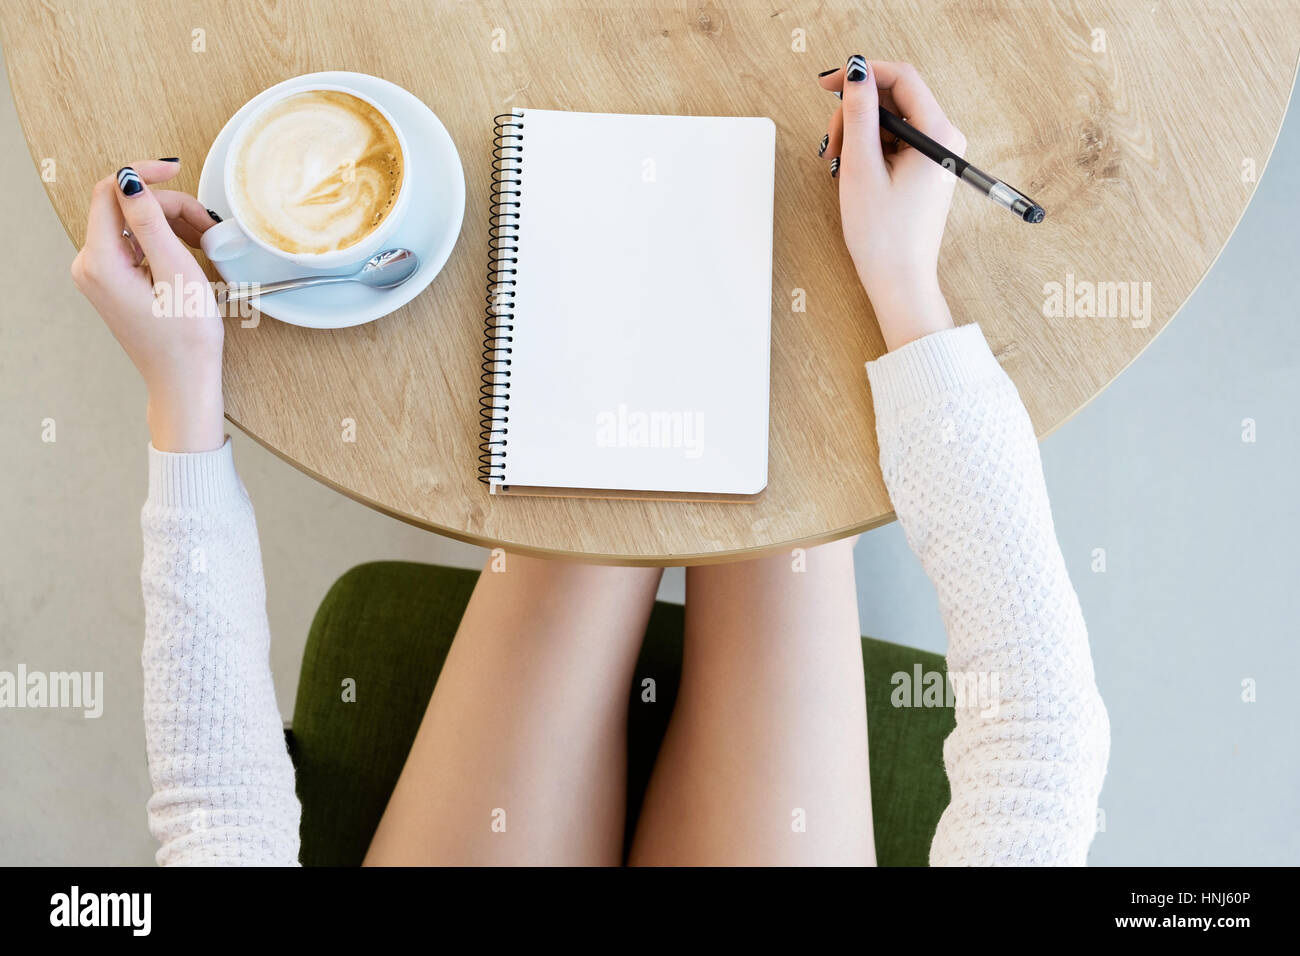 Woman's hand writing in notebook Photo Stock